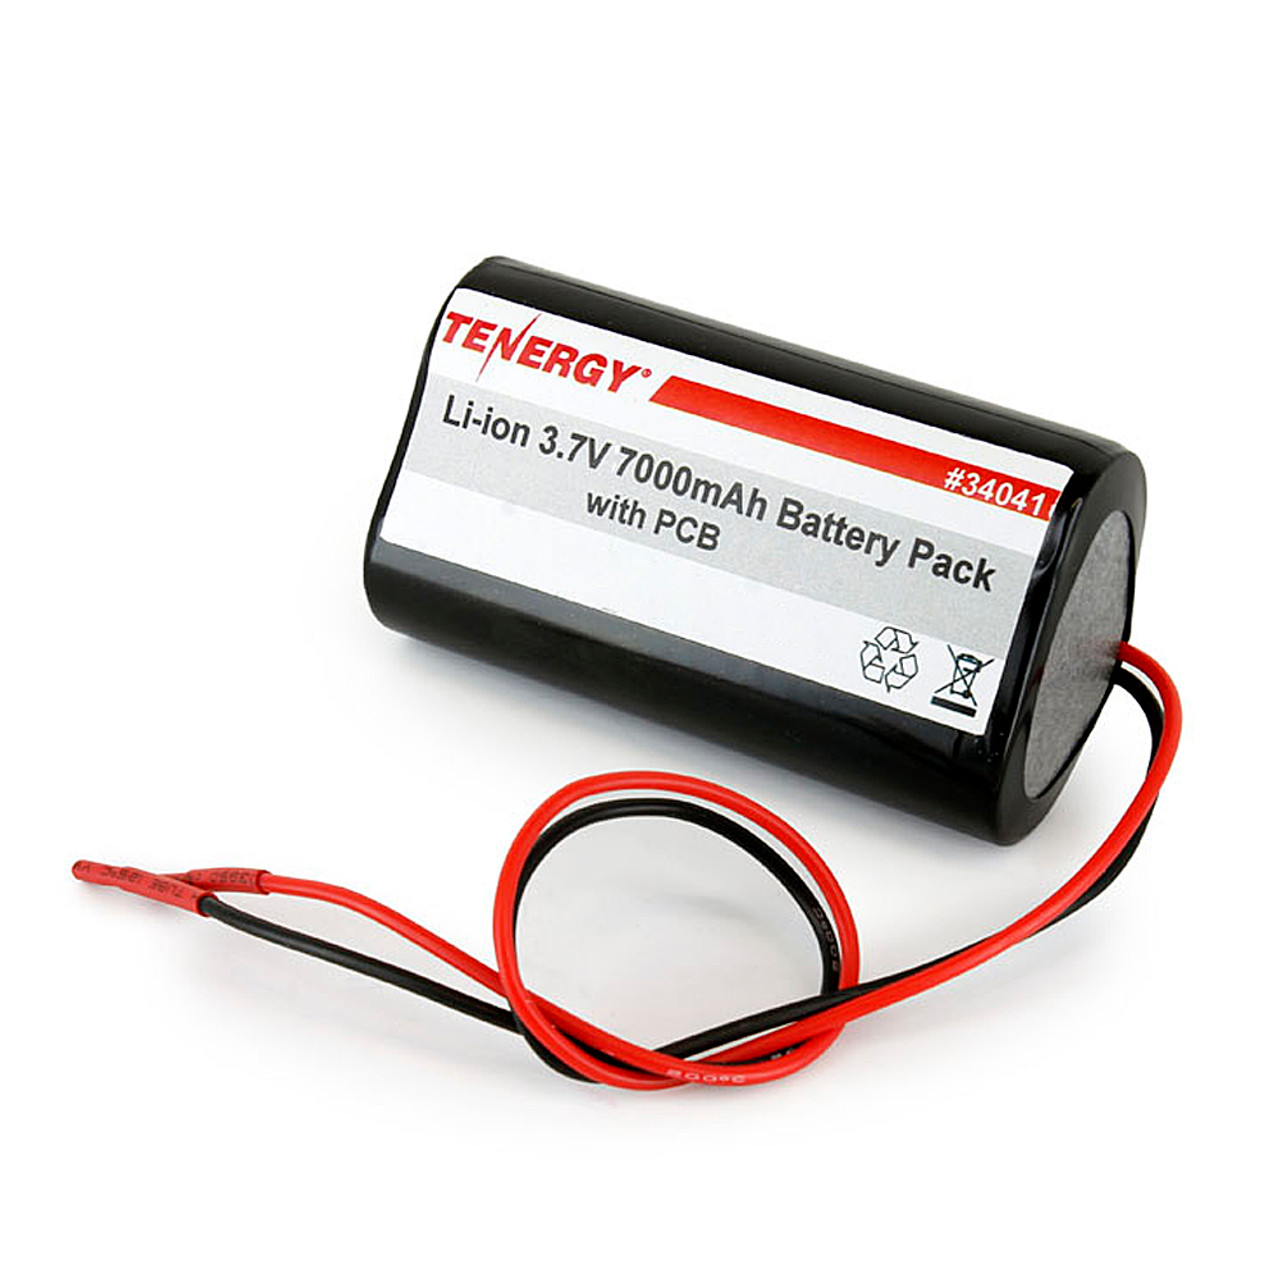 AT: Tenergy Li-ion 18650 3.6V 7000mAh Rechargeable Battery Pack w/ PCB (1S2P, 25.20Wh, 6A Rate)